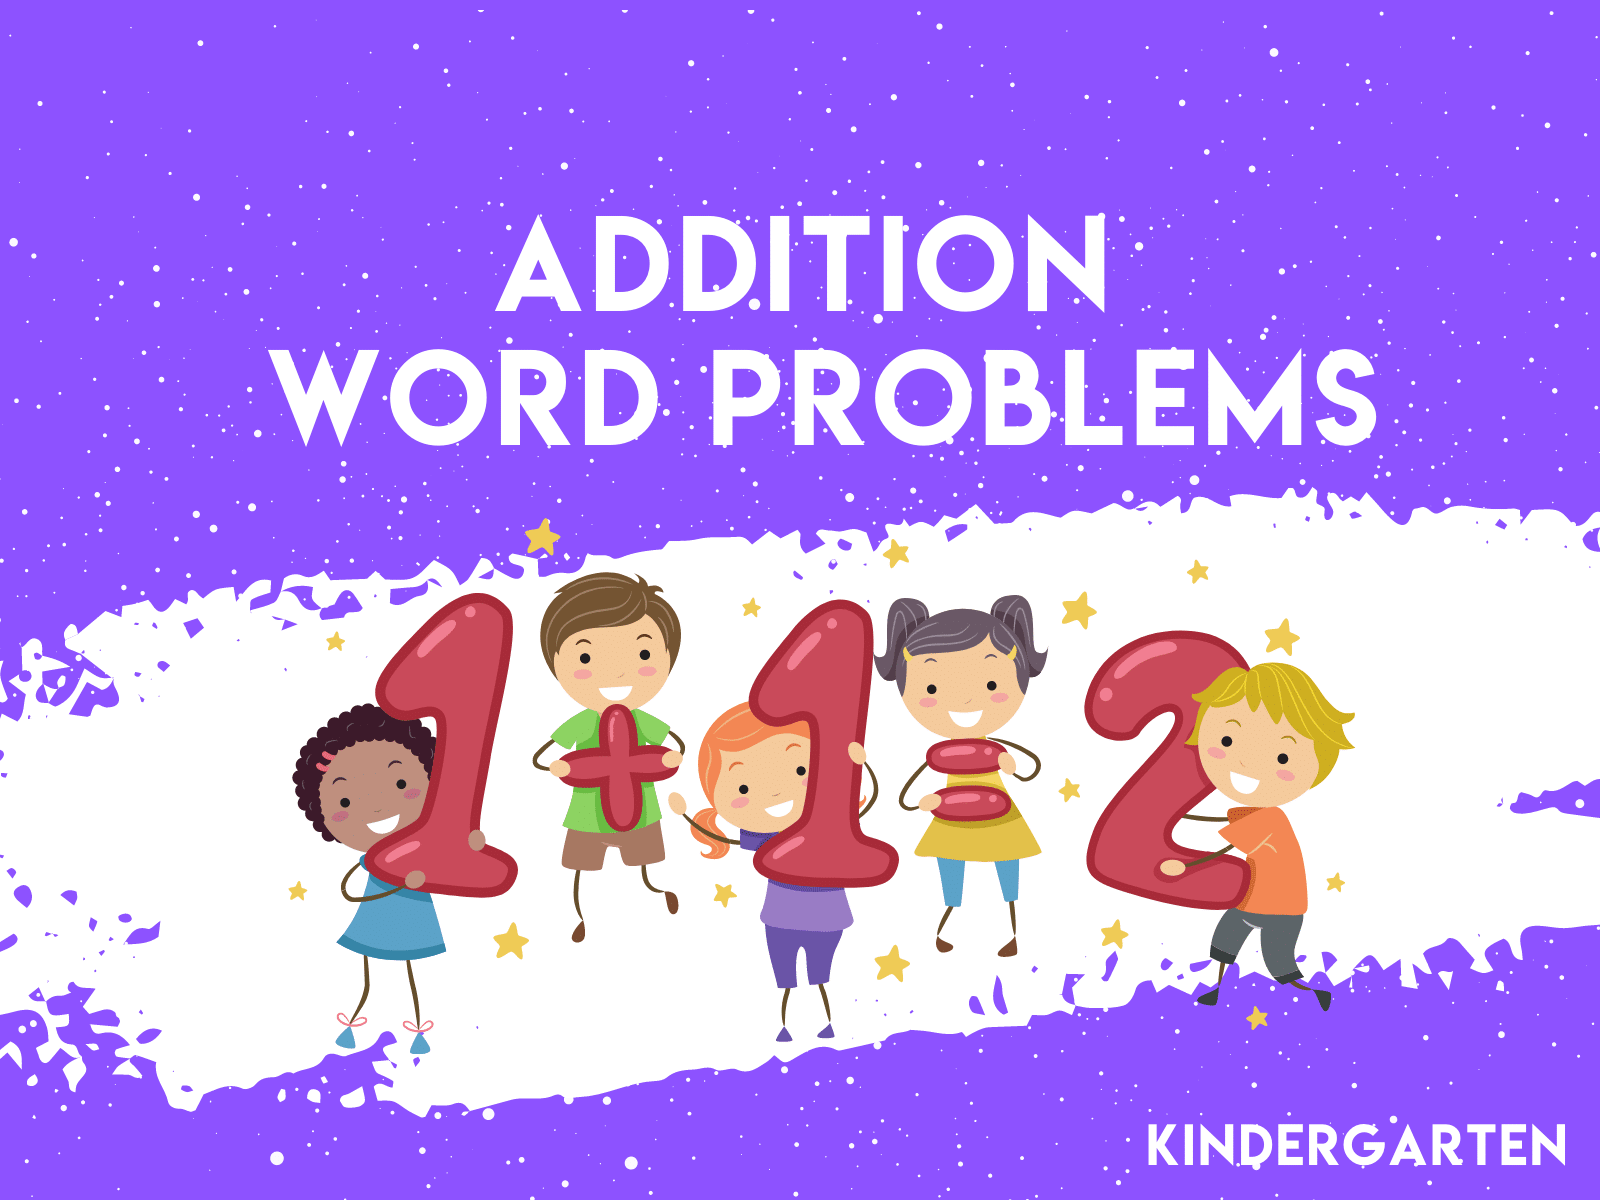 Free learning resources for kindergarten students to learn addition word problems.